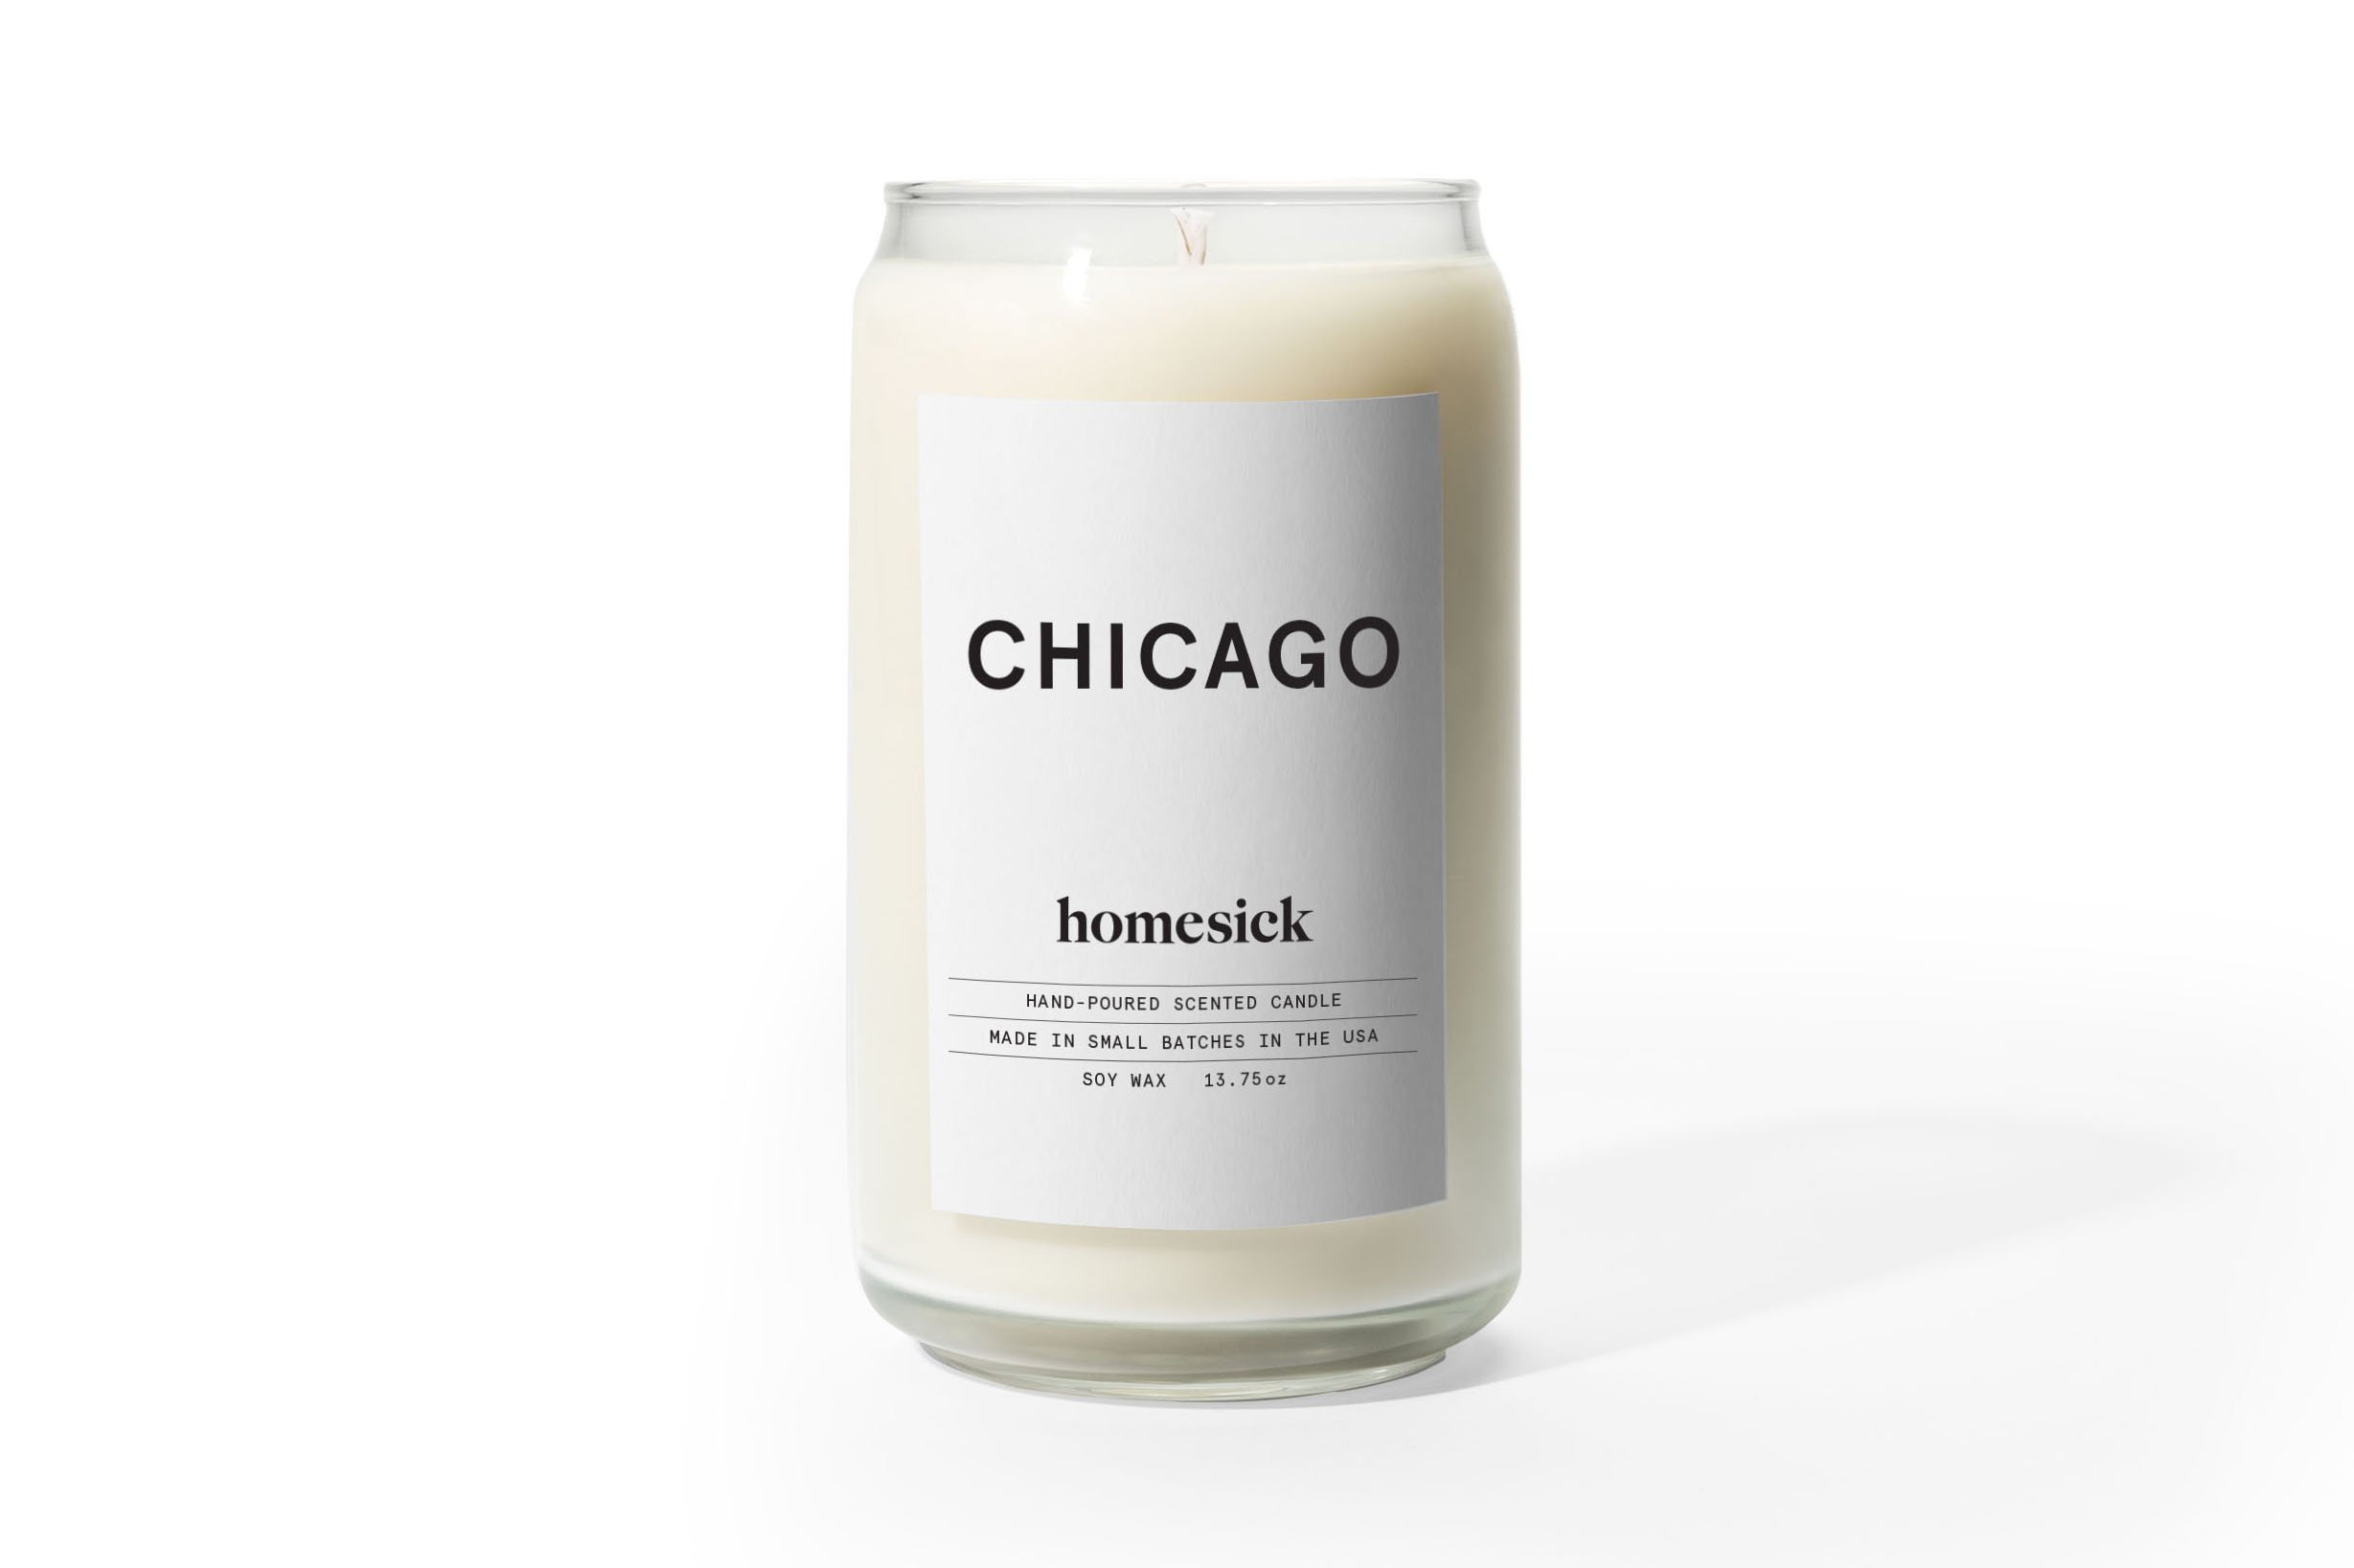 Homesick Scented Candle, Chicago